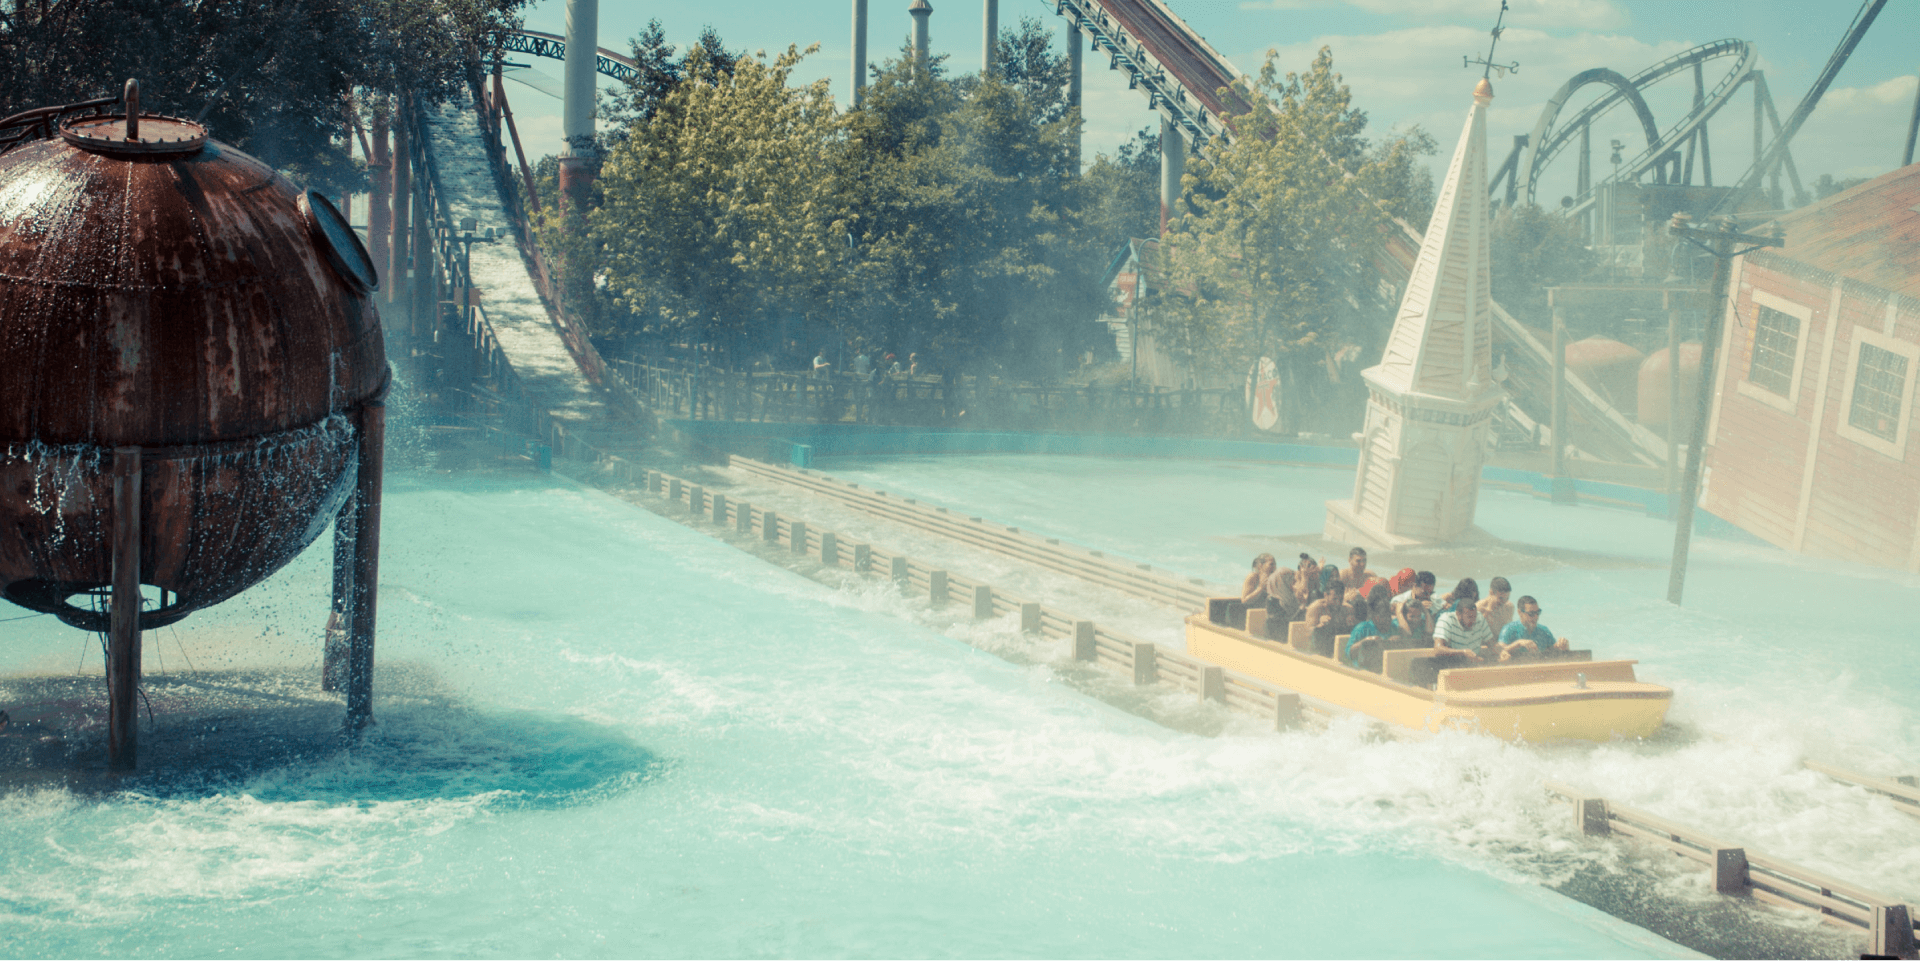 Tidal Wave Water Ride